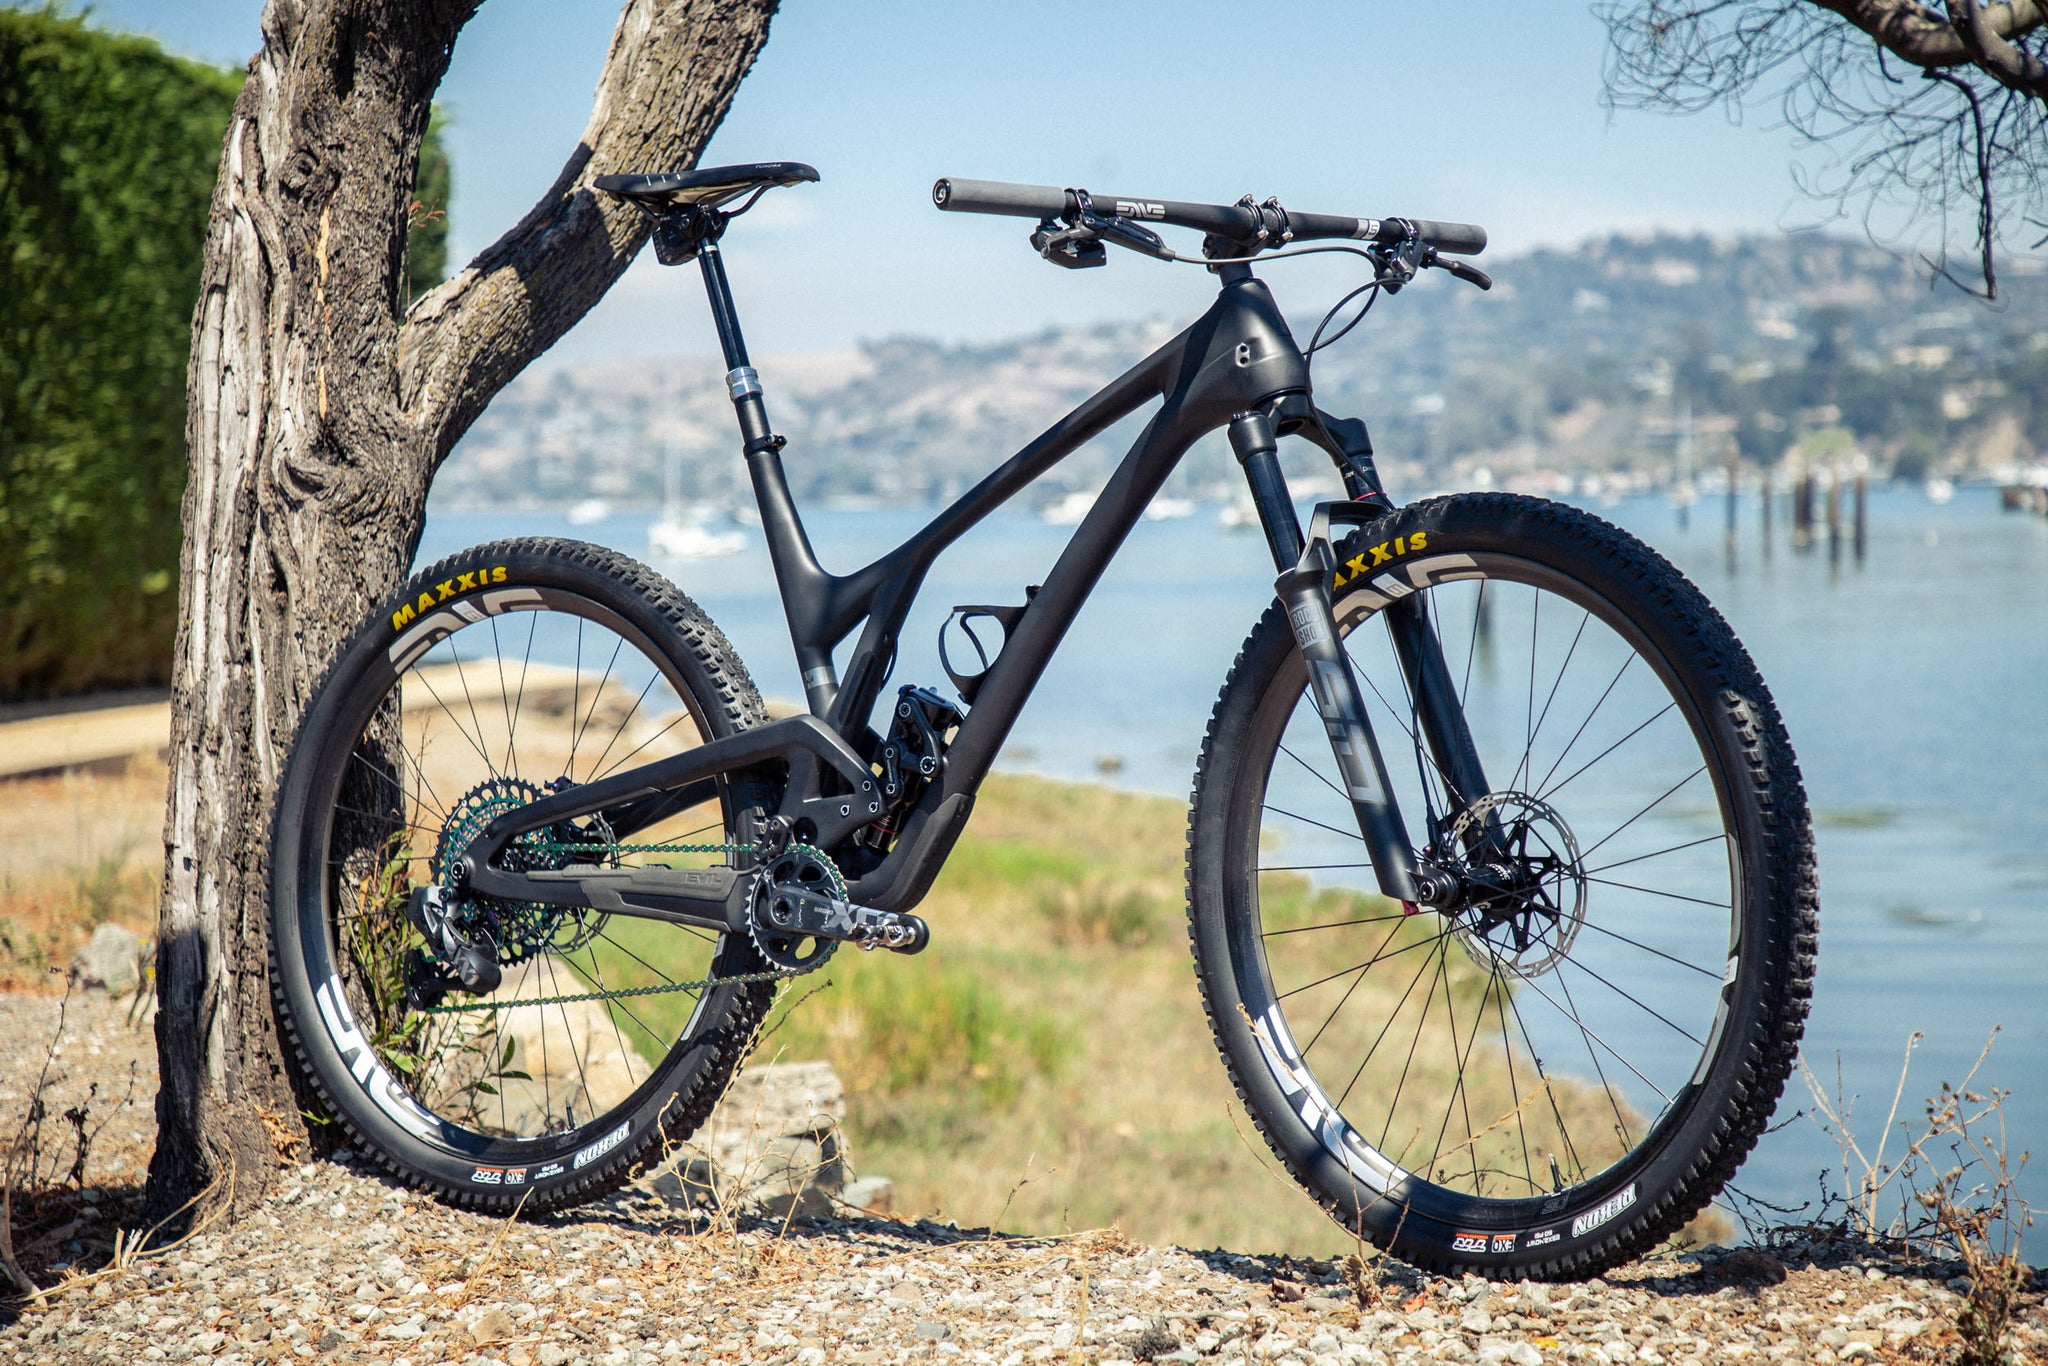 evil following black sram axs rock shox enve bike profile